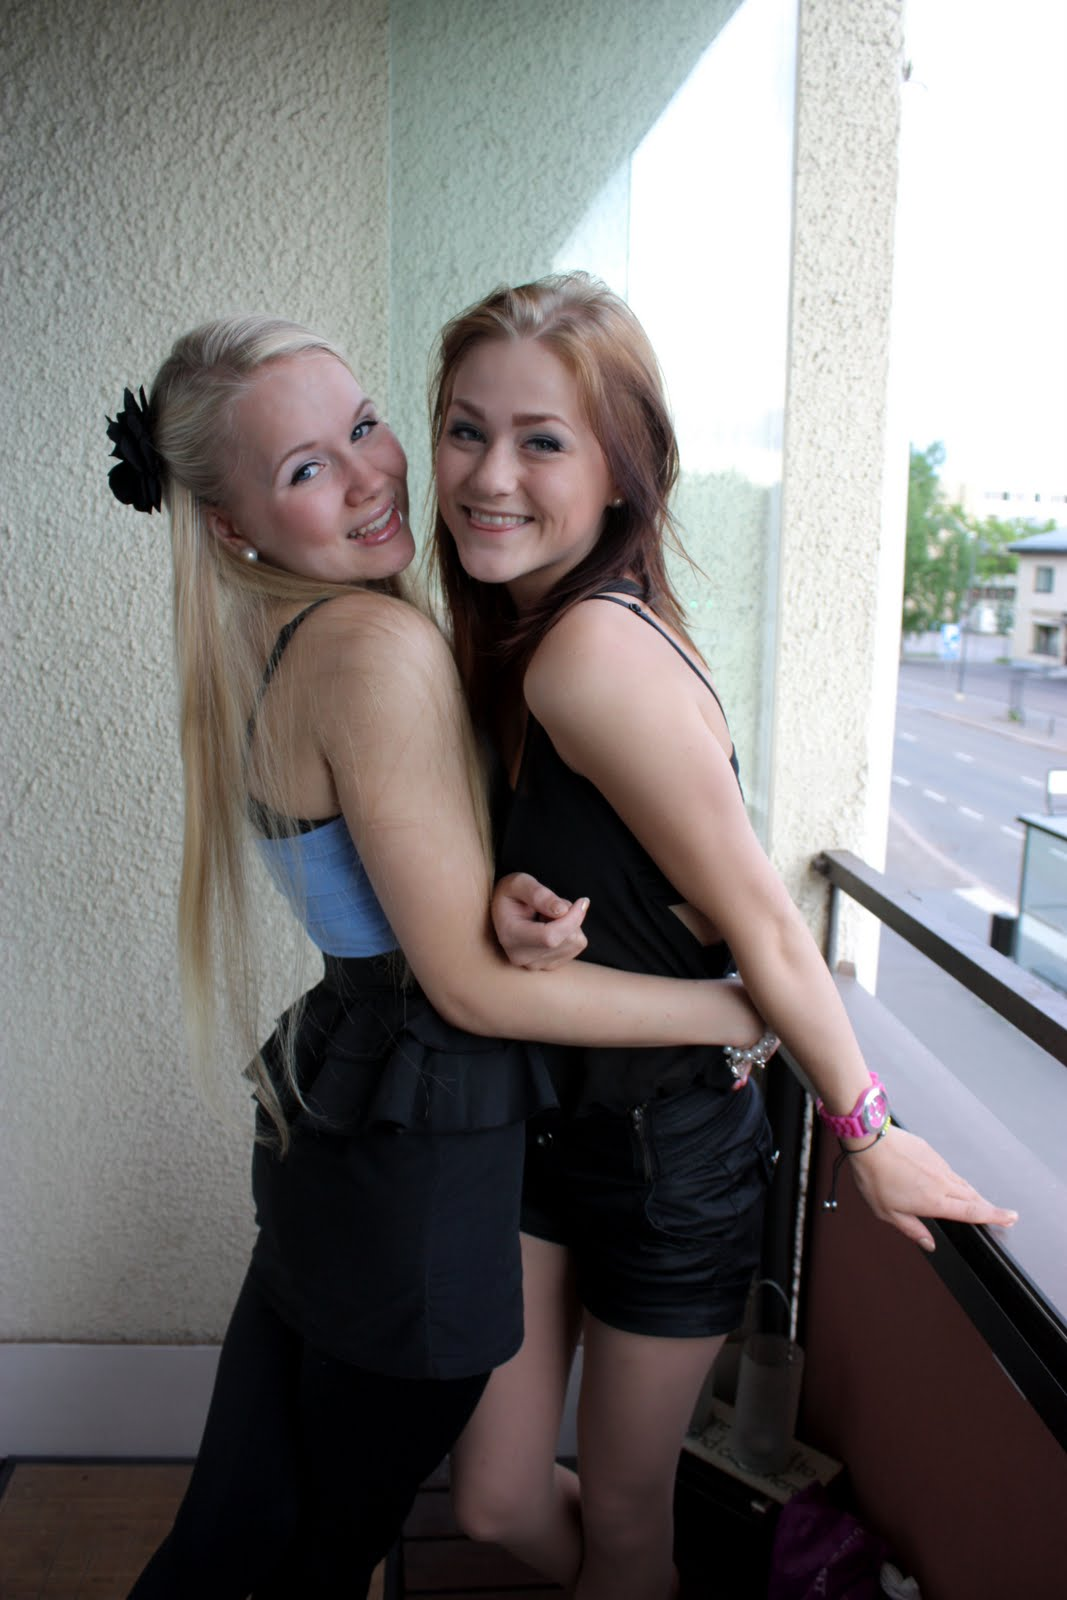 hot girls tampere thaihieronta levi